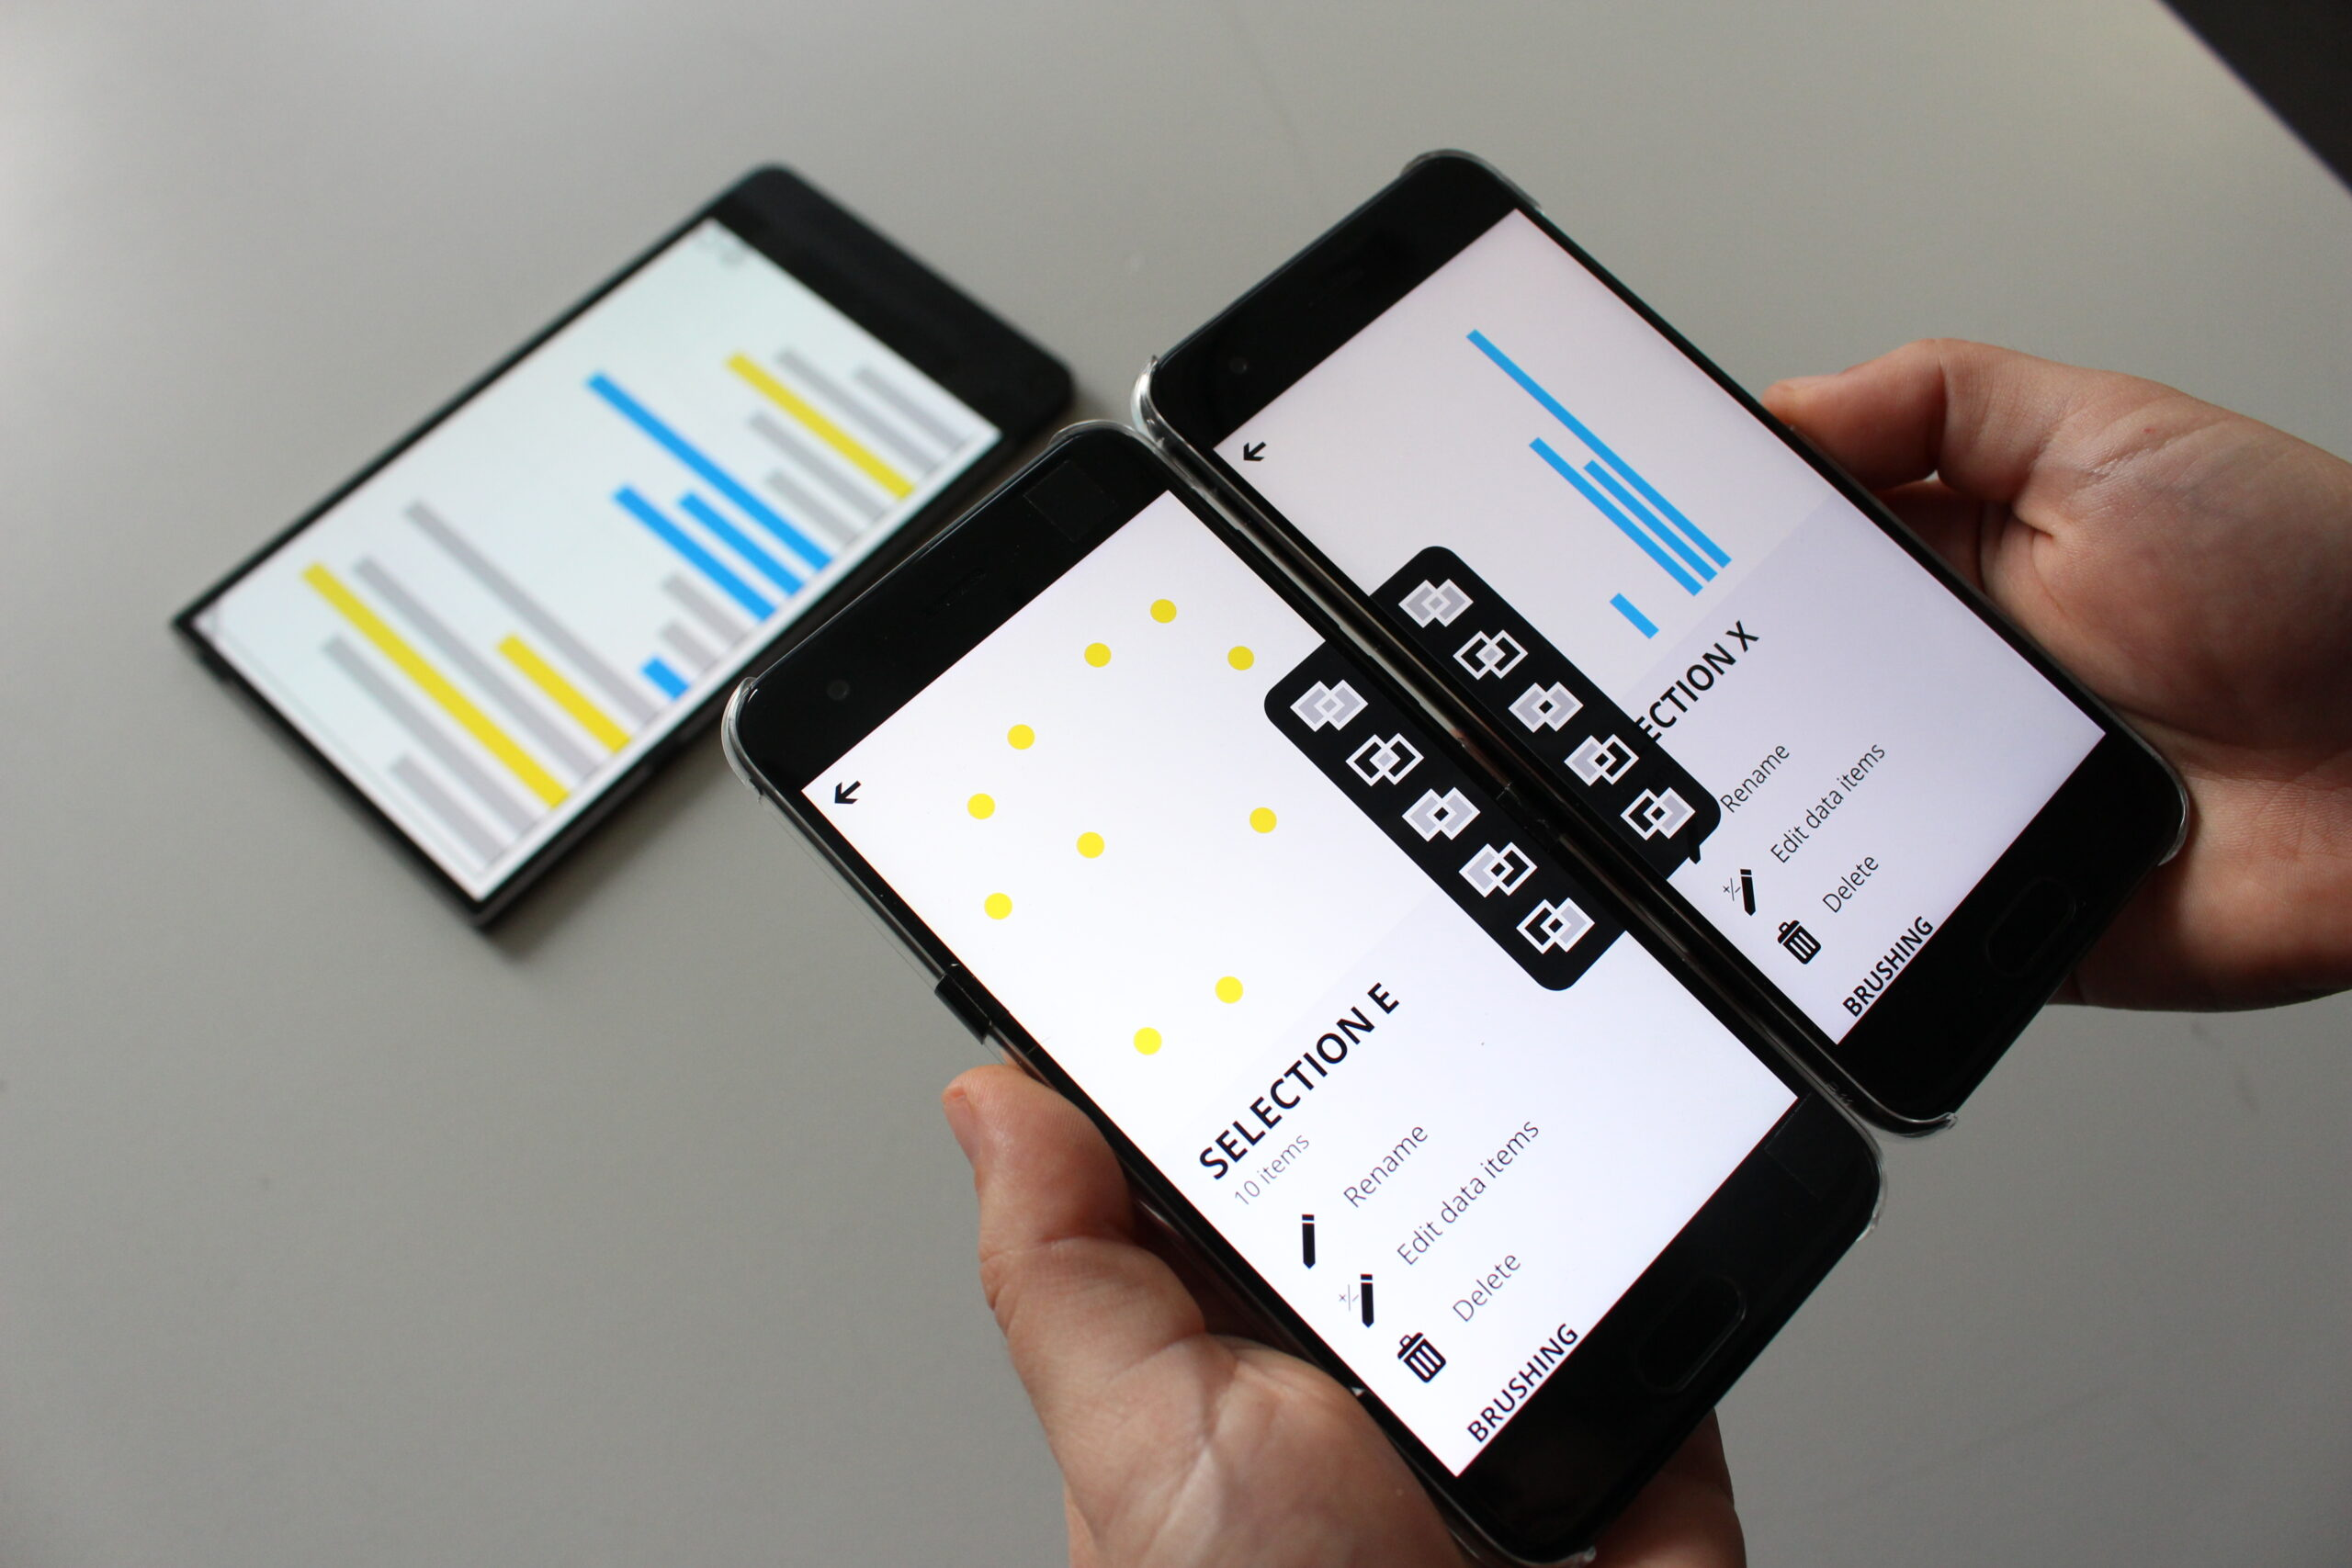 Two smartphones, each representing a selection, next to each other and showing a menu for applying operations.